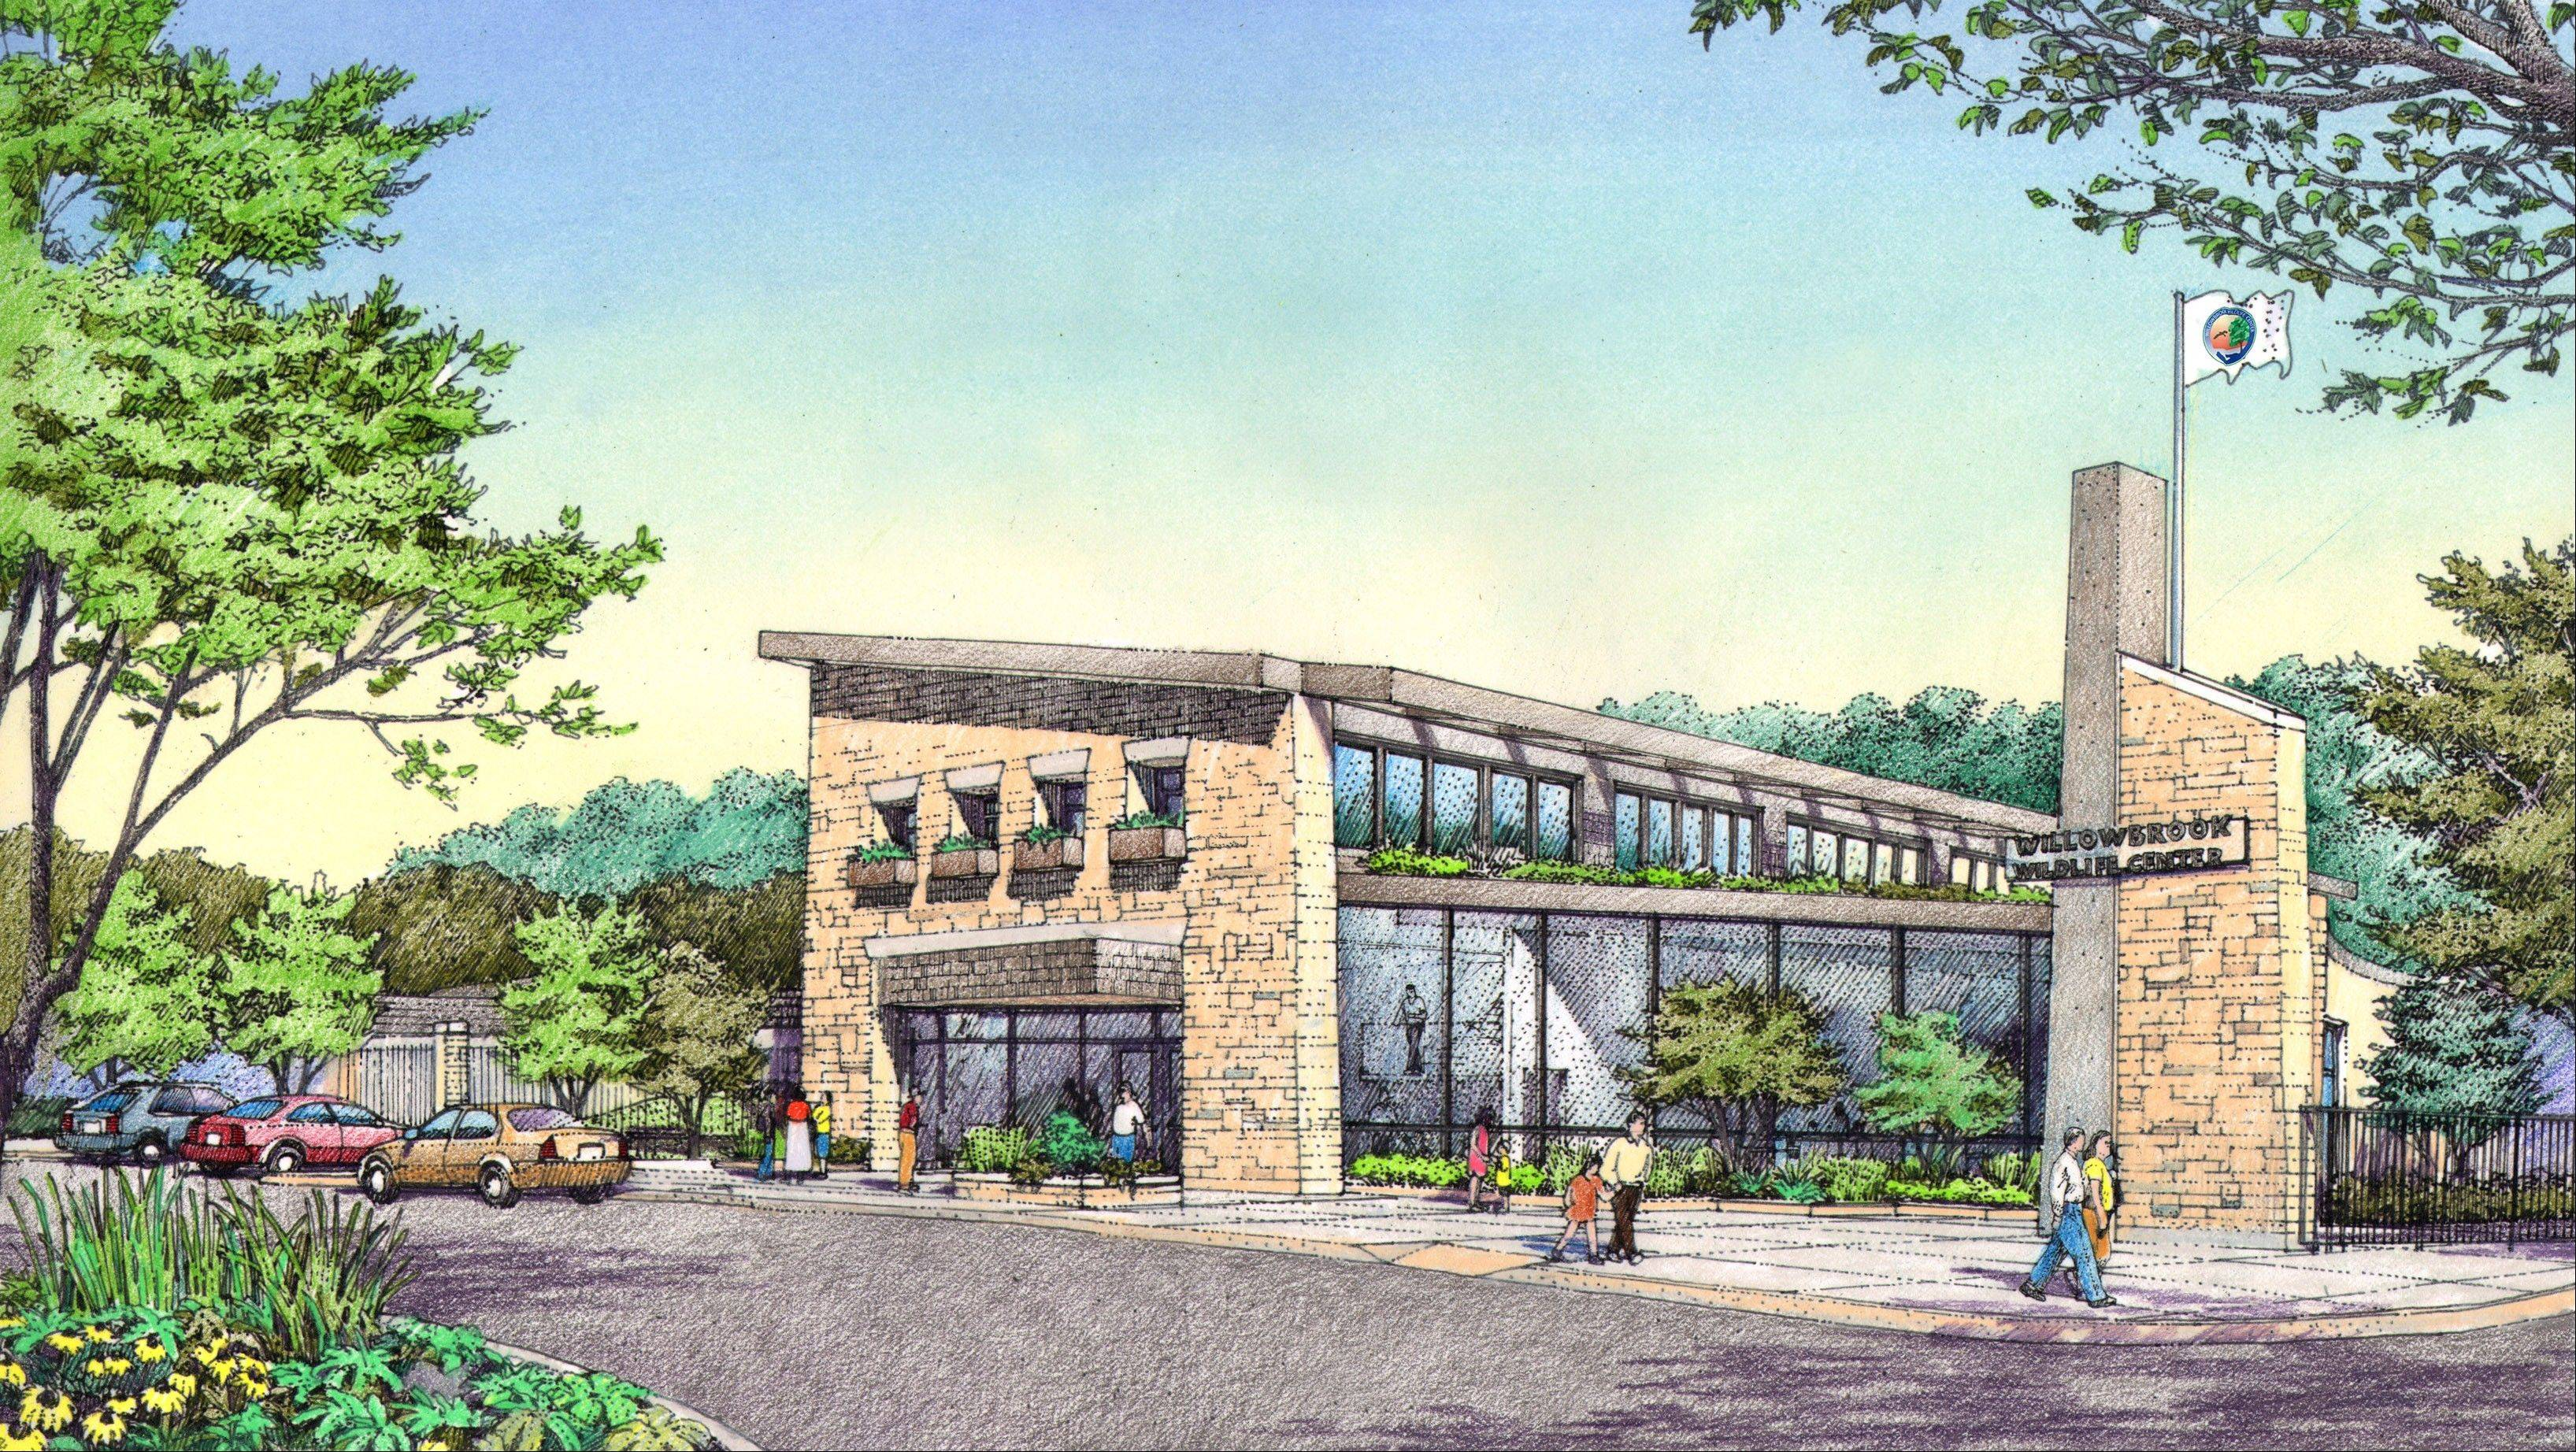 An updated service center and parking lot are included in the first phase renovations scheduled to begin by early September at the Willowbrook Wildlife Center in Glen Ellyn.